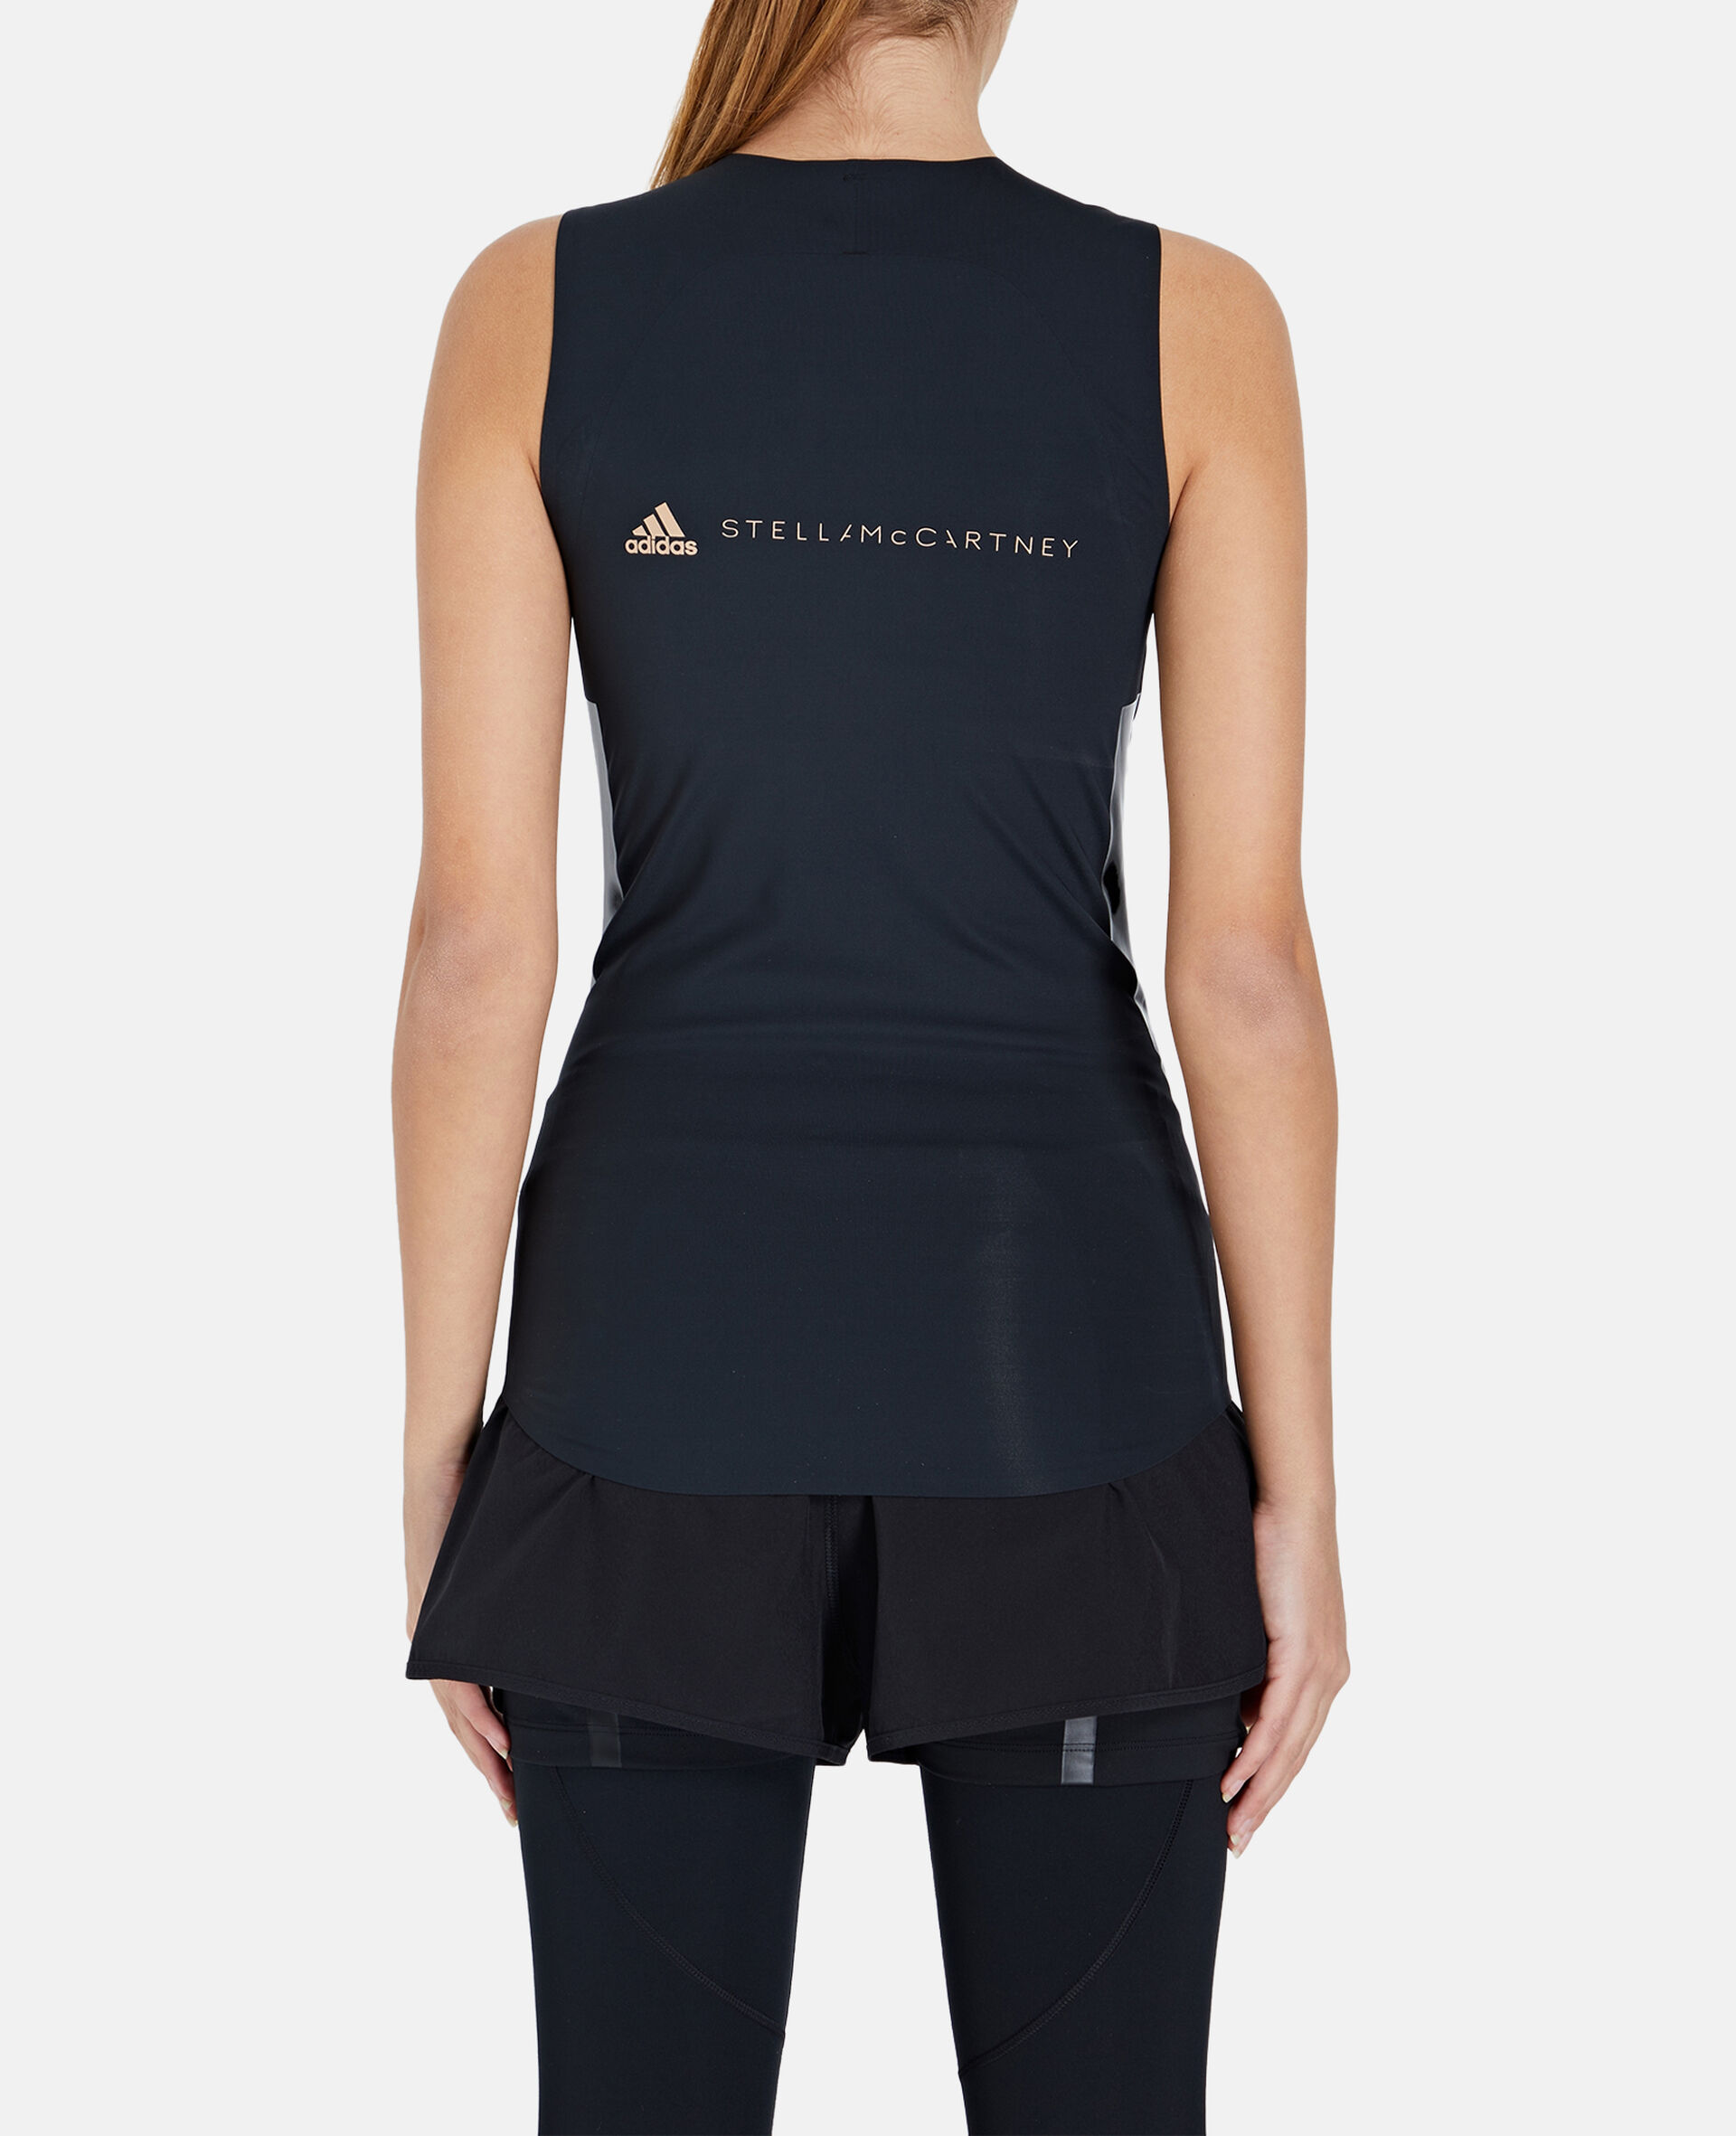 Black Training Tank Top-Black-large image number 2